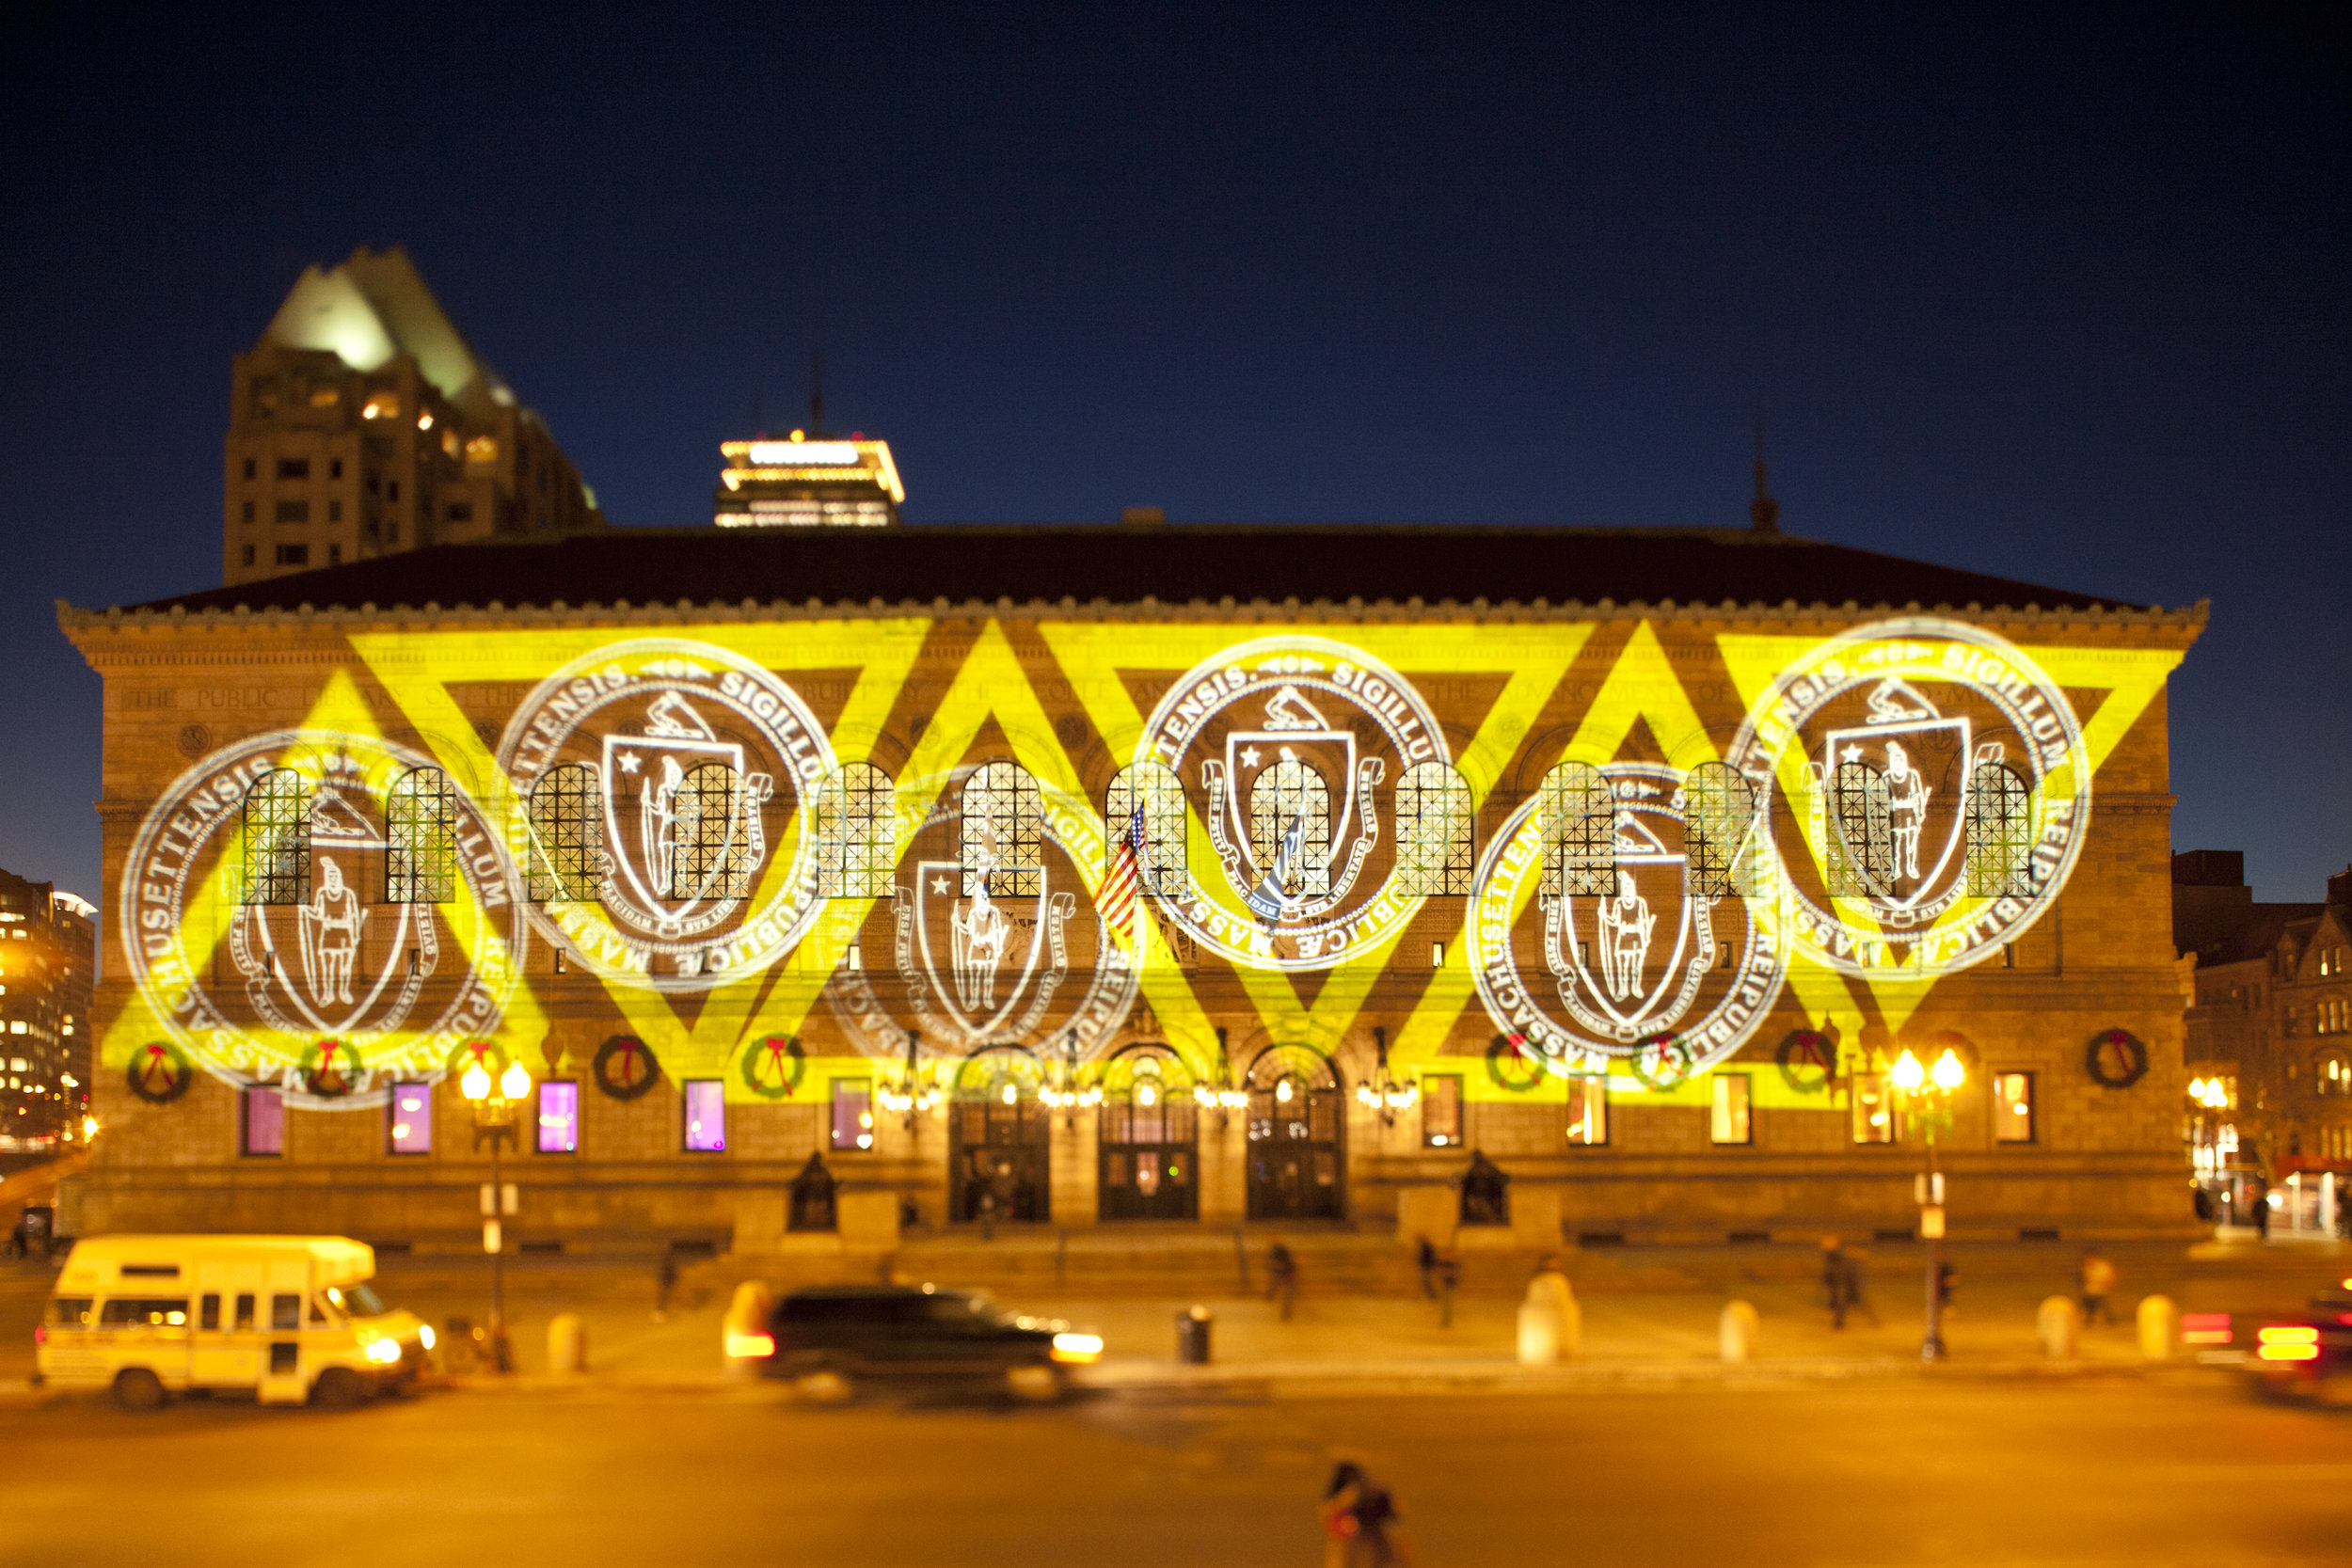 Building Gobo Projection.jpg